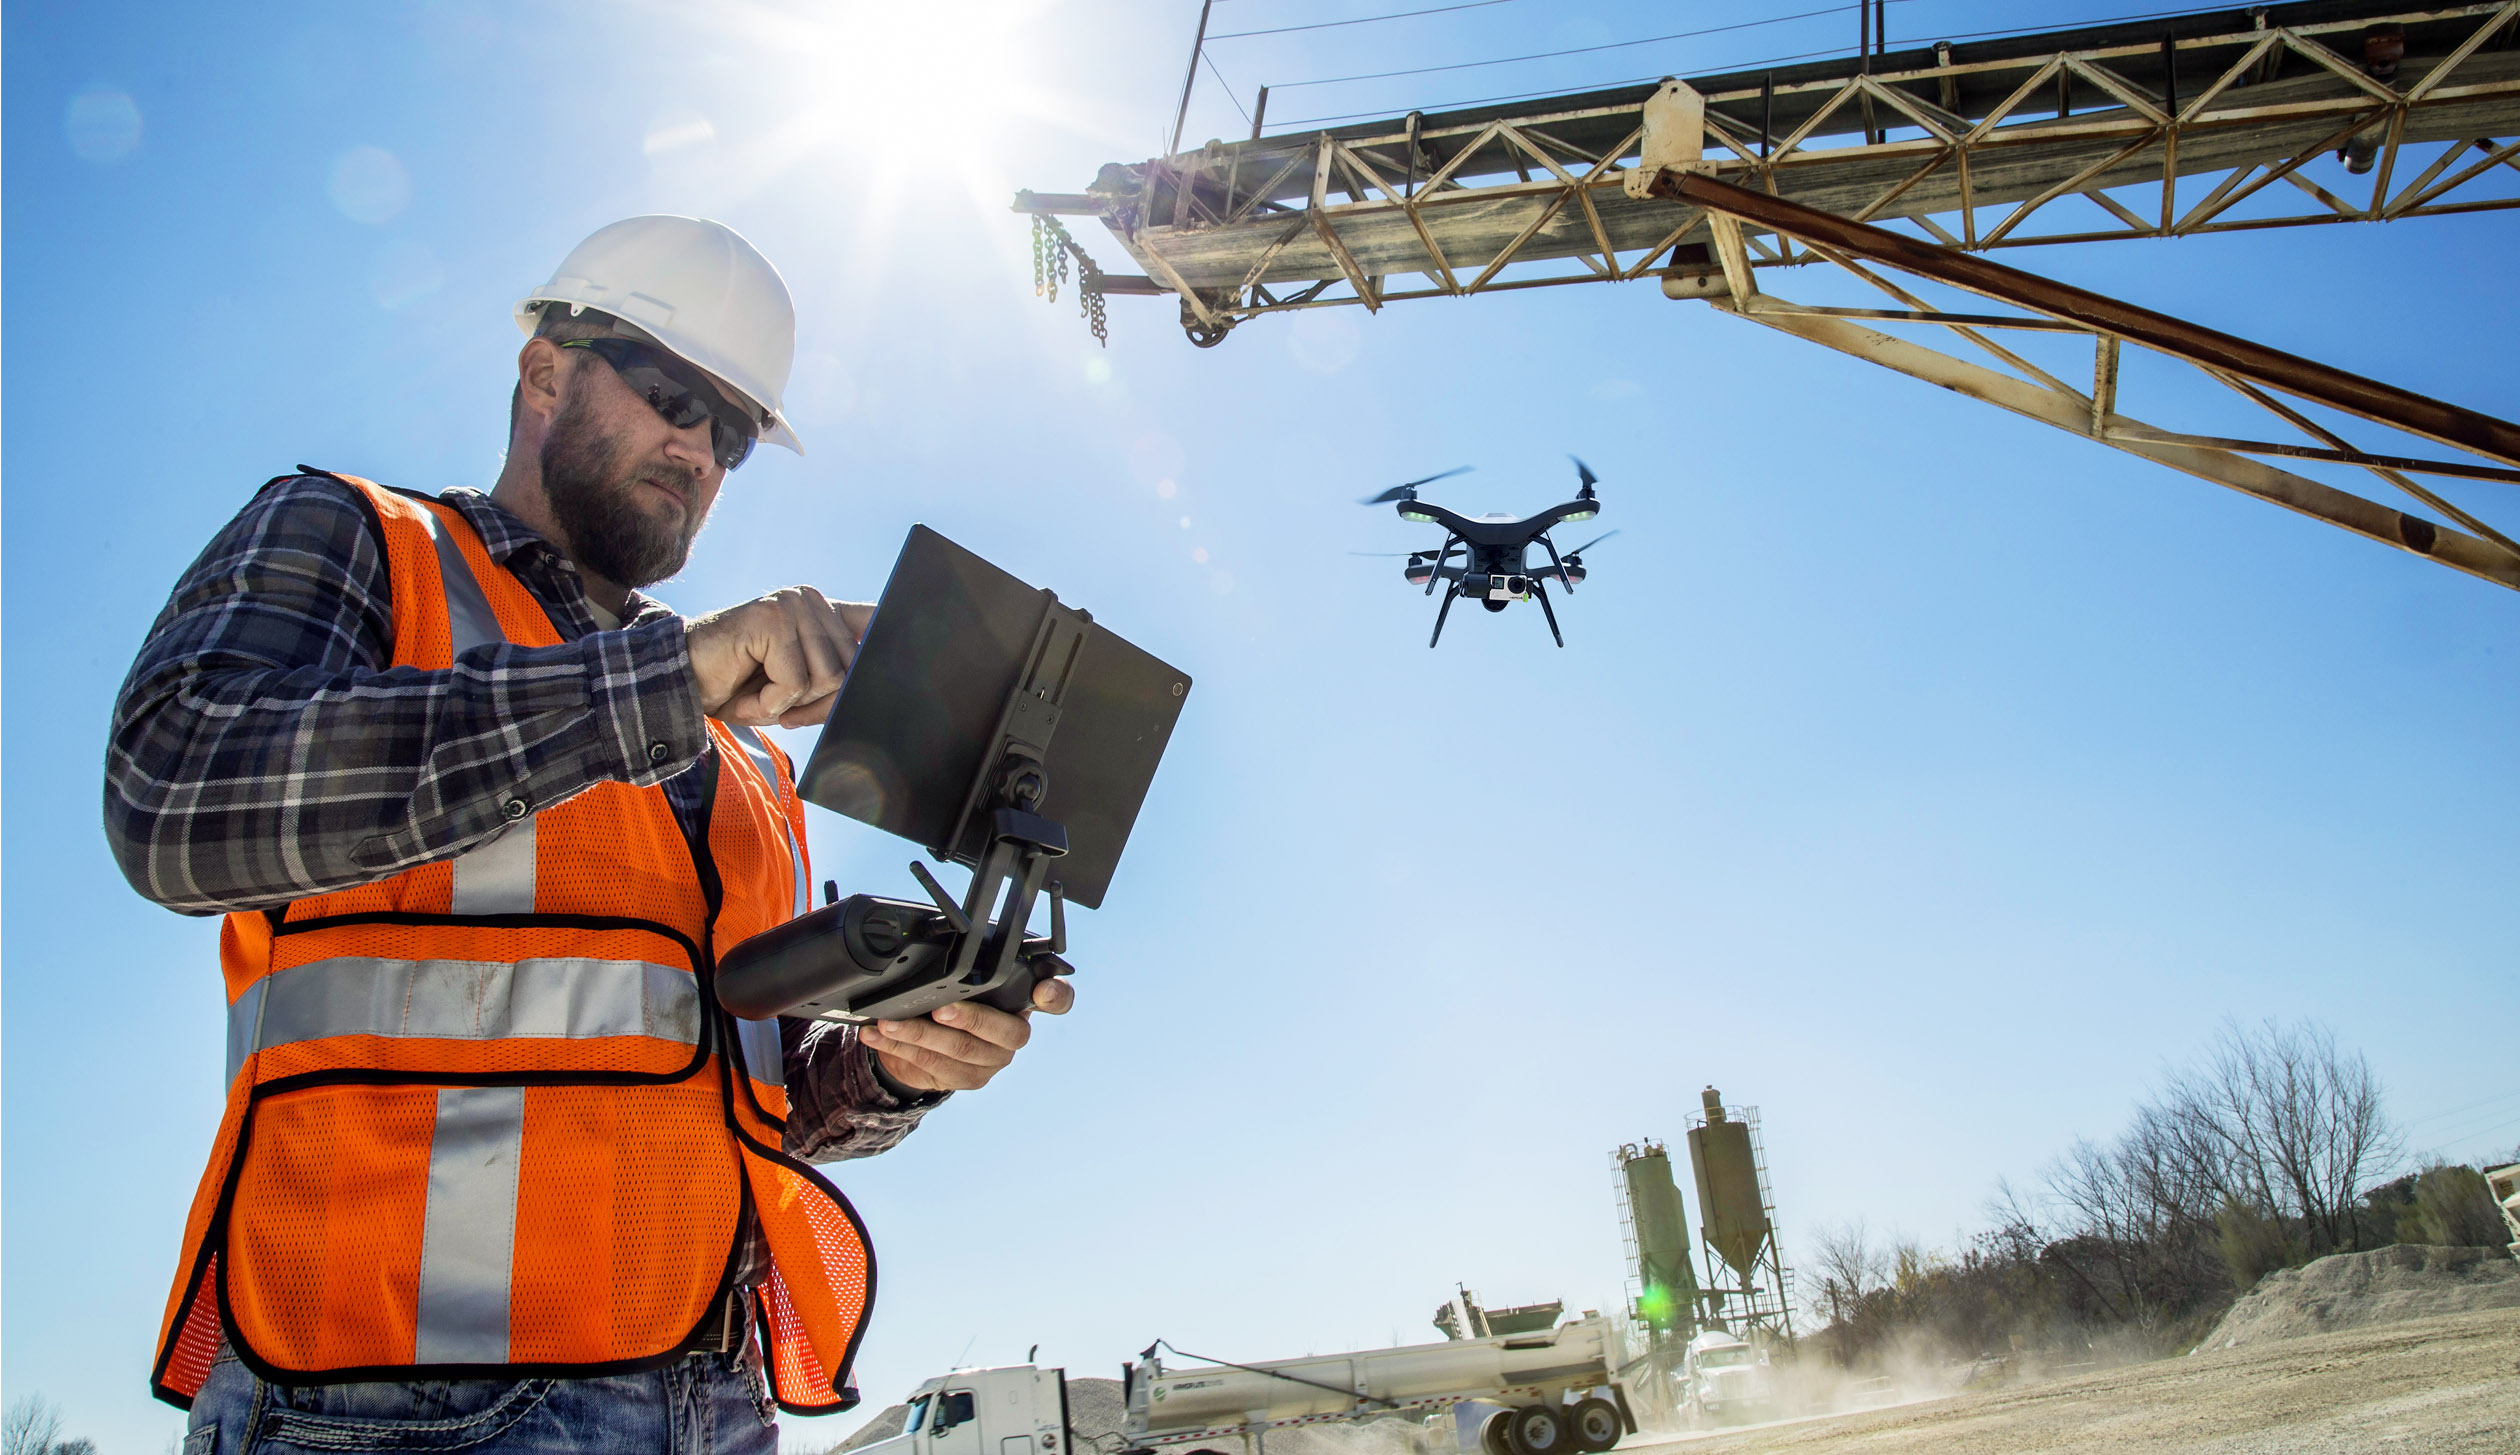 Worker with Drone on Site